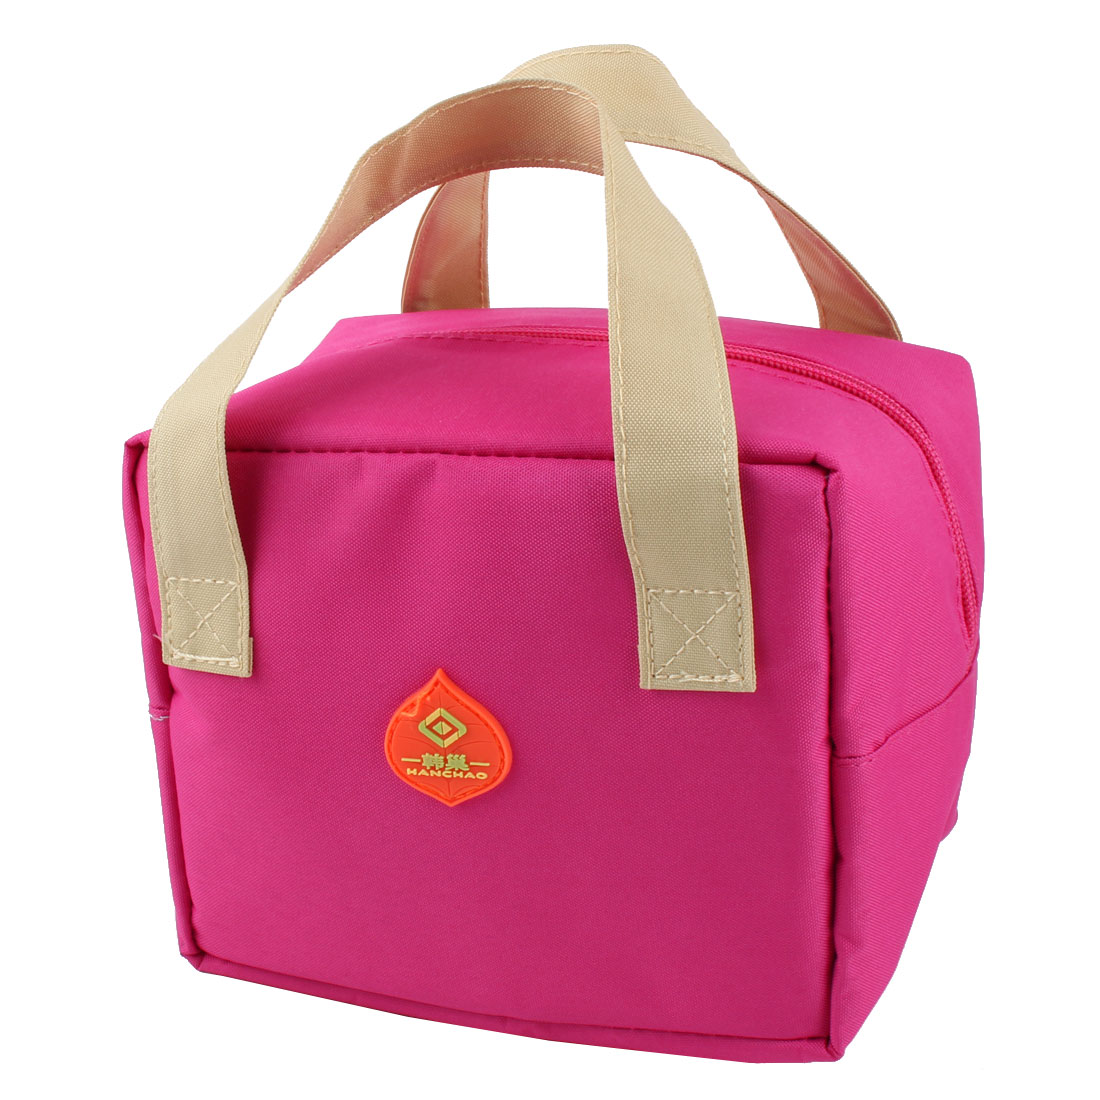 Outdoor Portable Rectangle Thermal Cooler Insulated Lunch Bag Tote Picnic Container Pouch Fuchsia